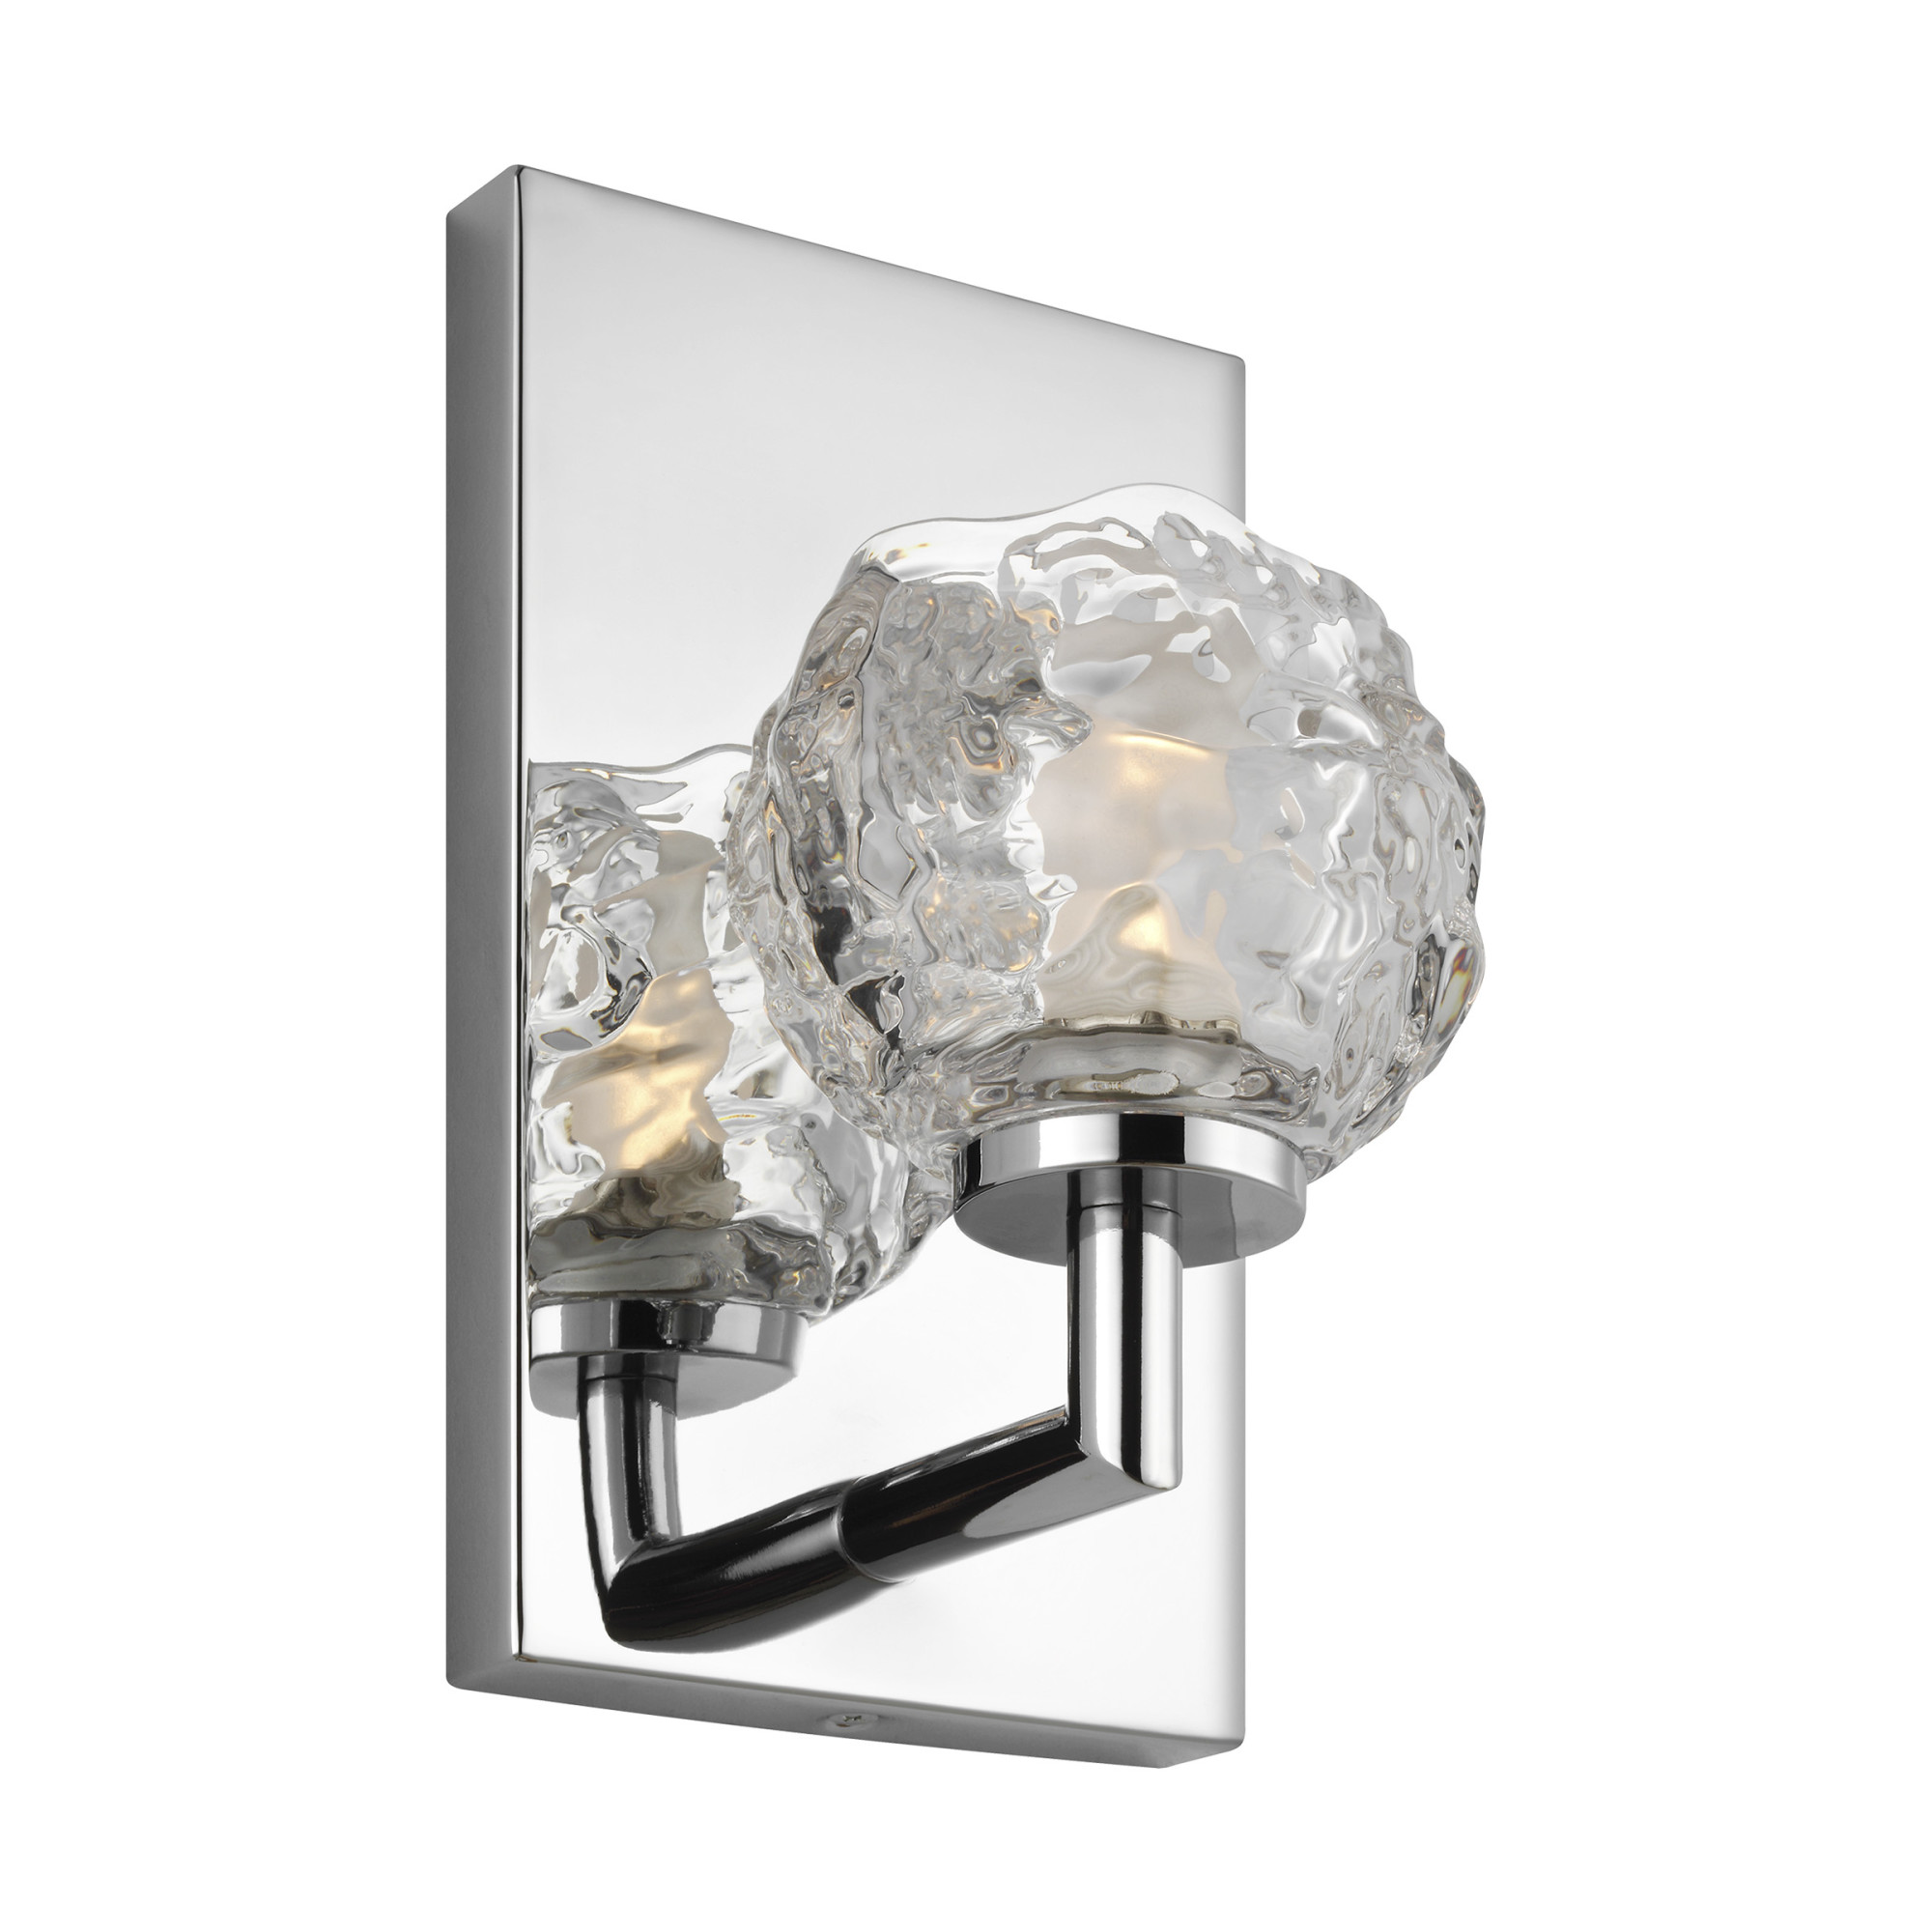 Details About Feiss Vs24331ch L1 Arielle 1 Light 9 Tall Led Bathroom Sconce Chrome